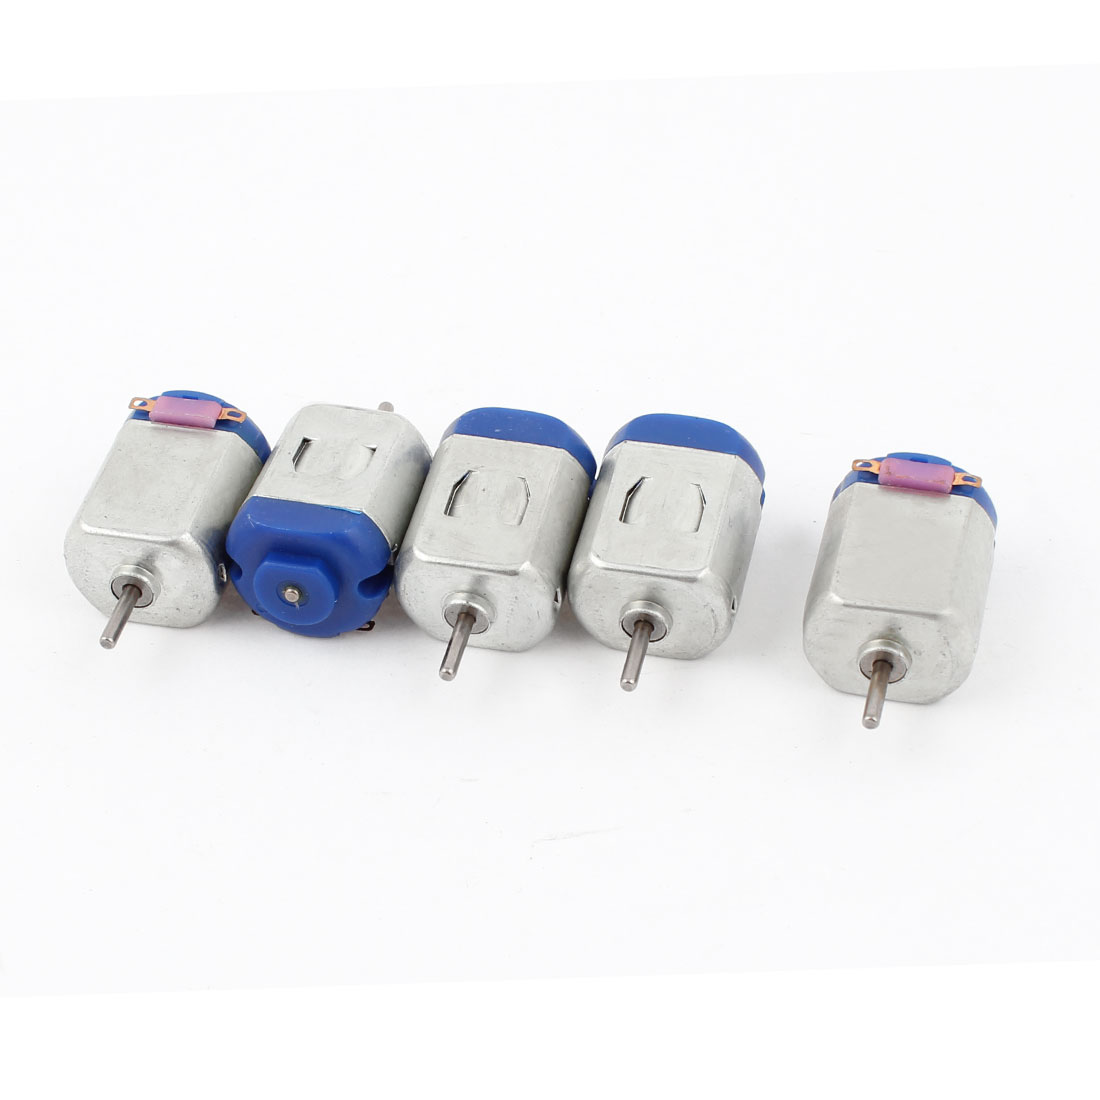 5pcs-130-16140-DC-6V-12500RPM-Vibration-Motor-w-Varistor-for-RC-Helicopter